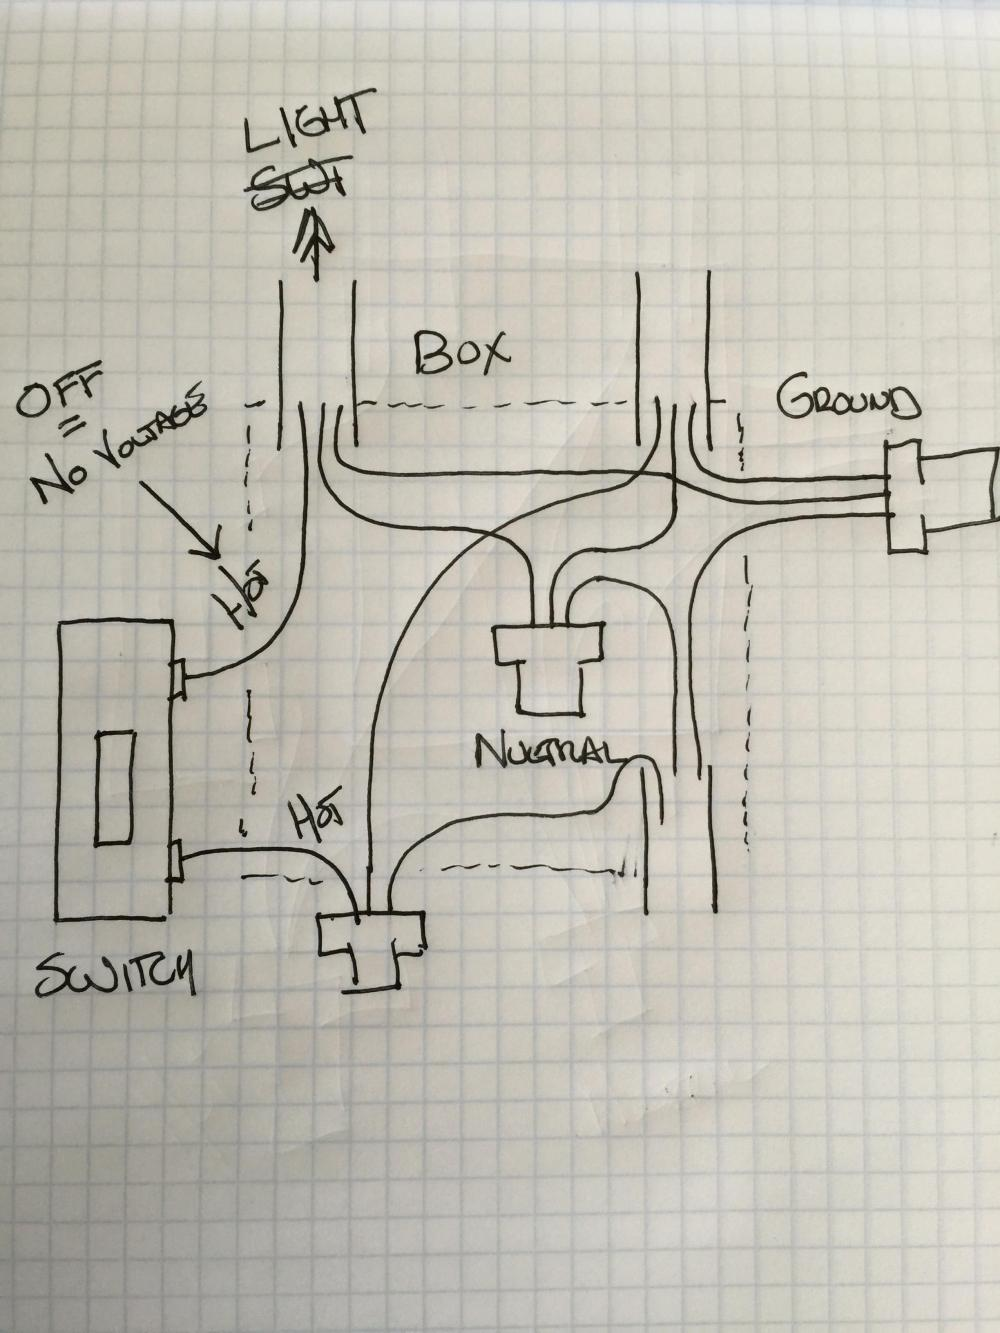 medium resolution of light fixture for led dimming wiring diagram